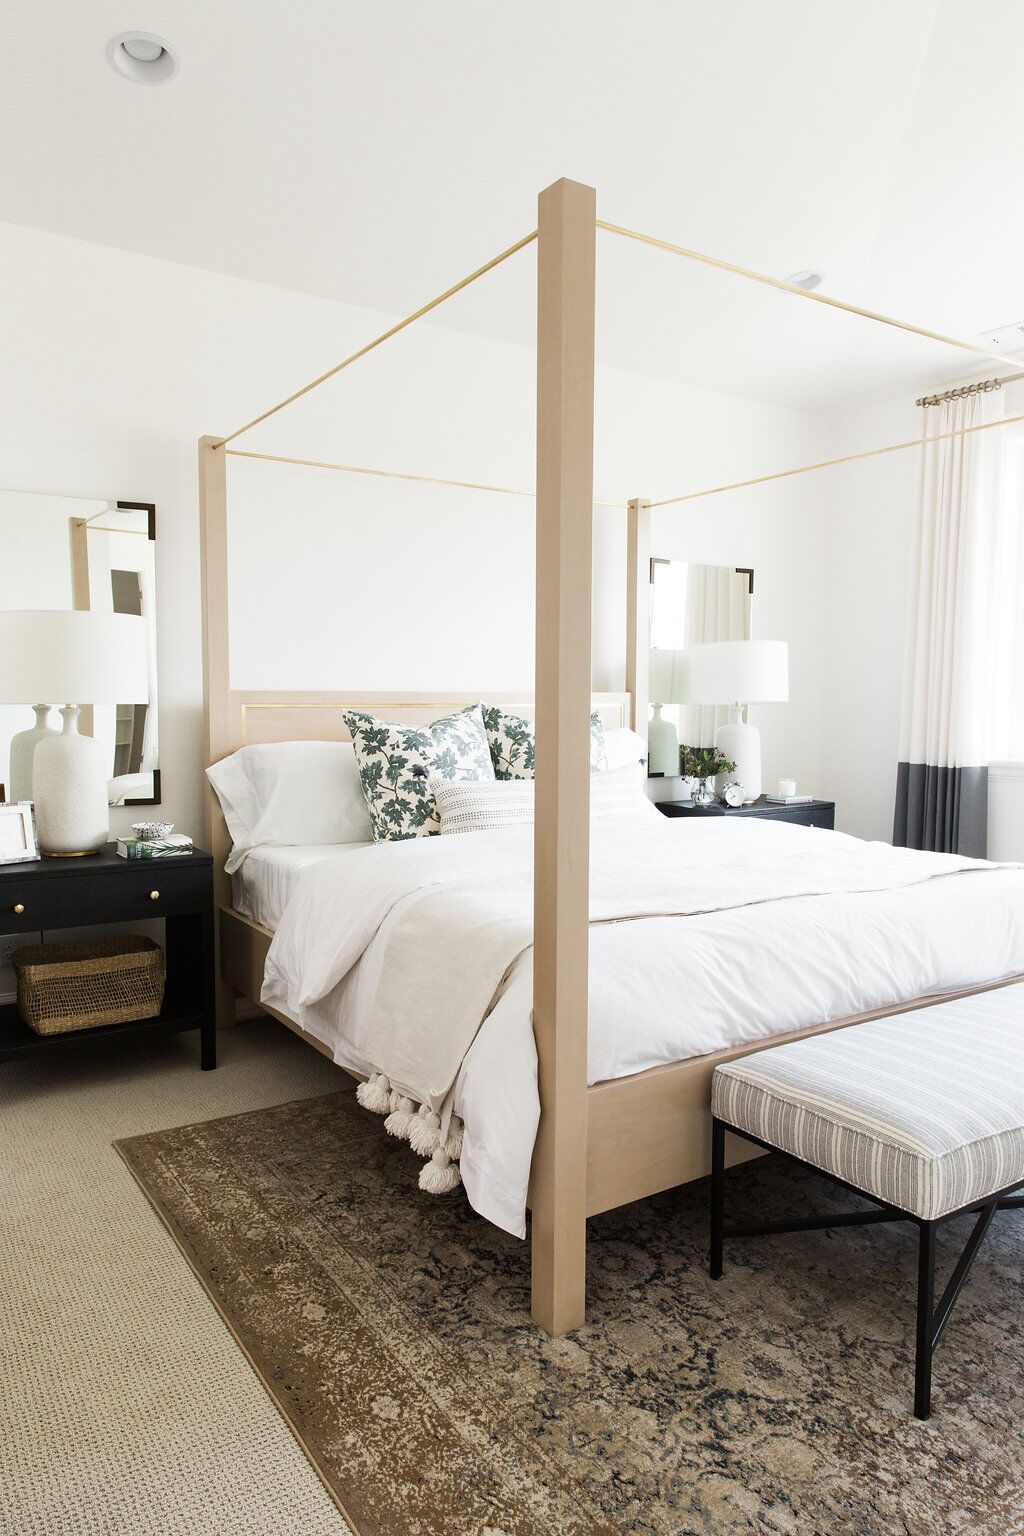 How to decorate around a bed. Option: Hang matching mirrors on either side of the bed above nightstands or bedside tables. (Design: Studio McGee) // neutral bedroom, mirrors above nightstands, white bedroom, transitional bedroom, modern traditional bedroom